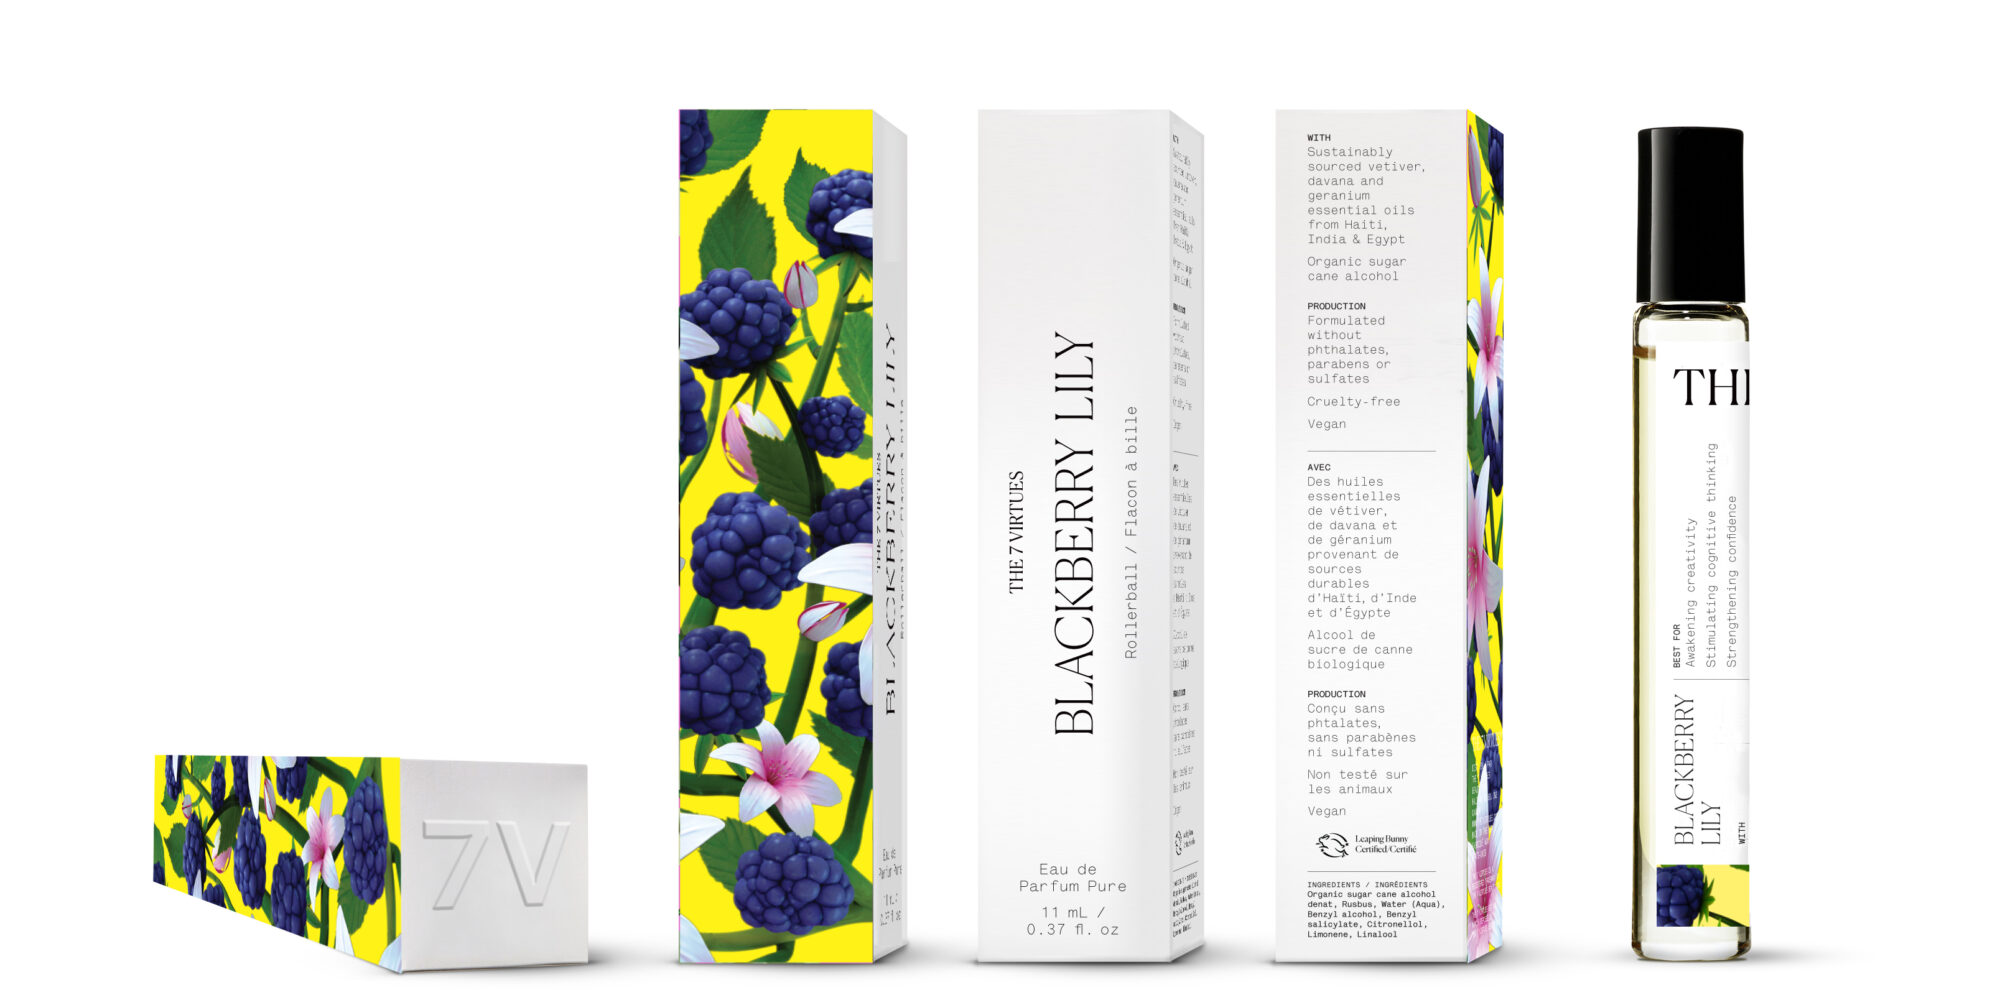 The Philosopher Queen Of Clean Fragrance: The 7 Virtues Founder Barb Stegemann Talks Inspiration And Expansion